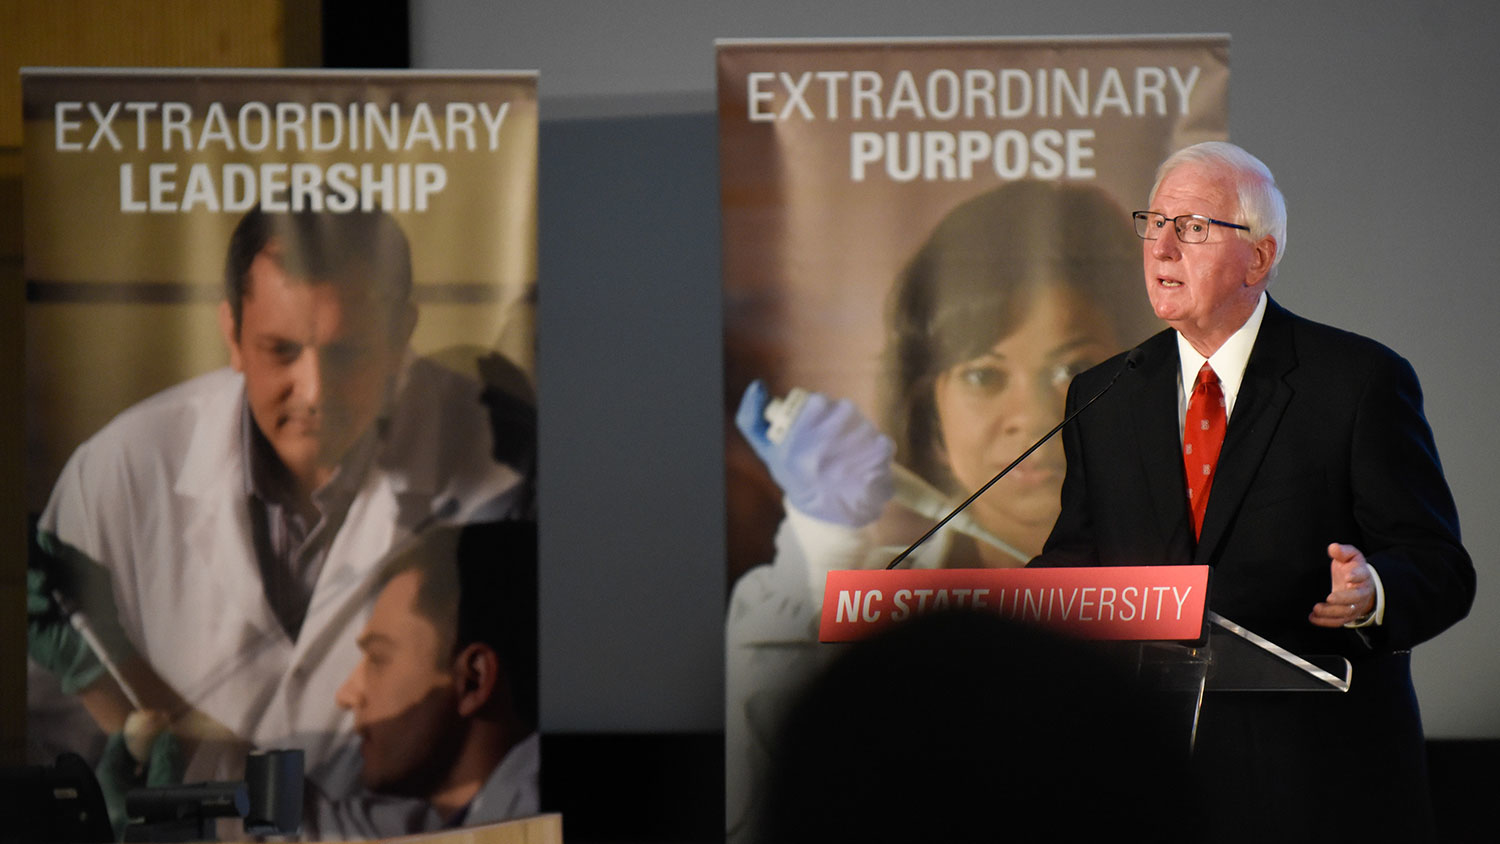 """Man at podium with banners behind him that say """"Extraordinary Leadership"""" and """"Extraordinary Purpose"""""""